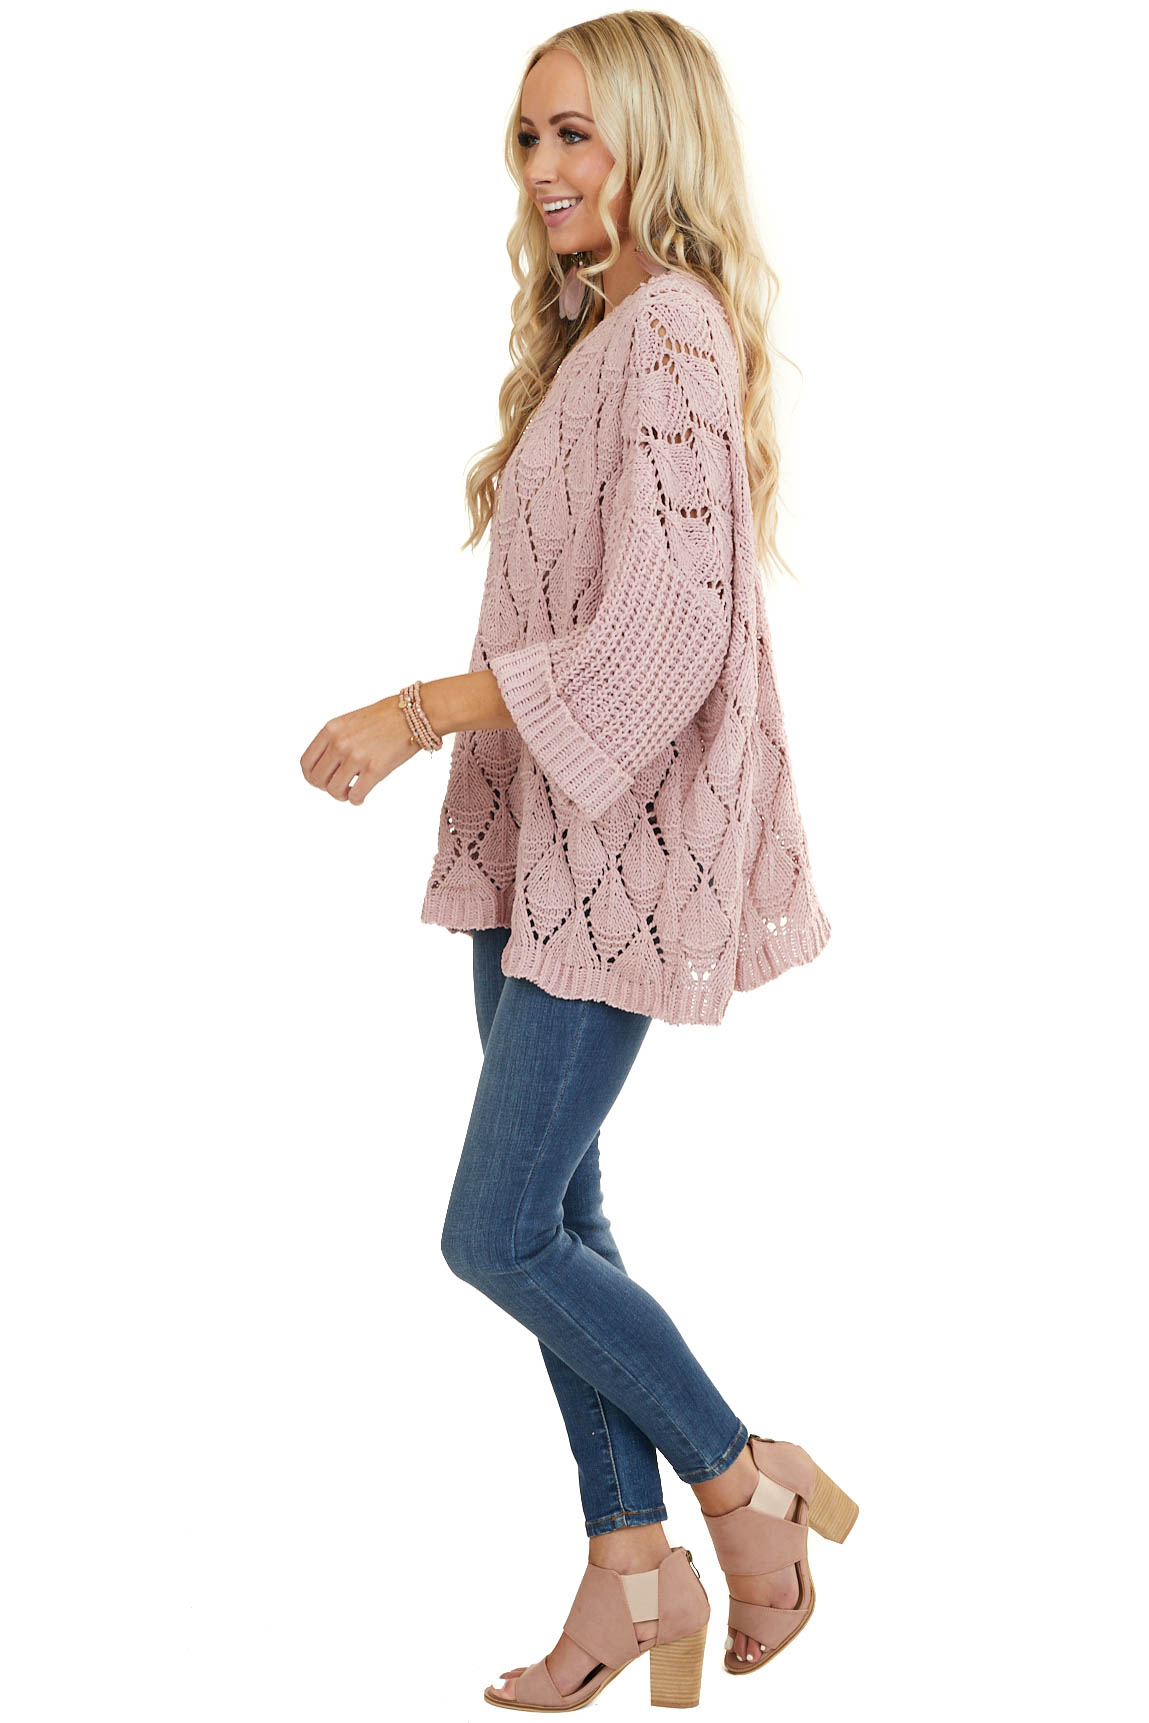 Dusty Blush Loose Knit Chenille Sweater with Cuffed Sleeves